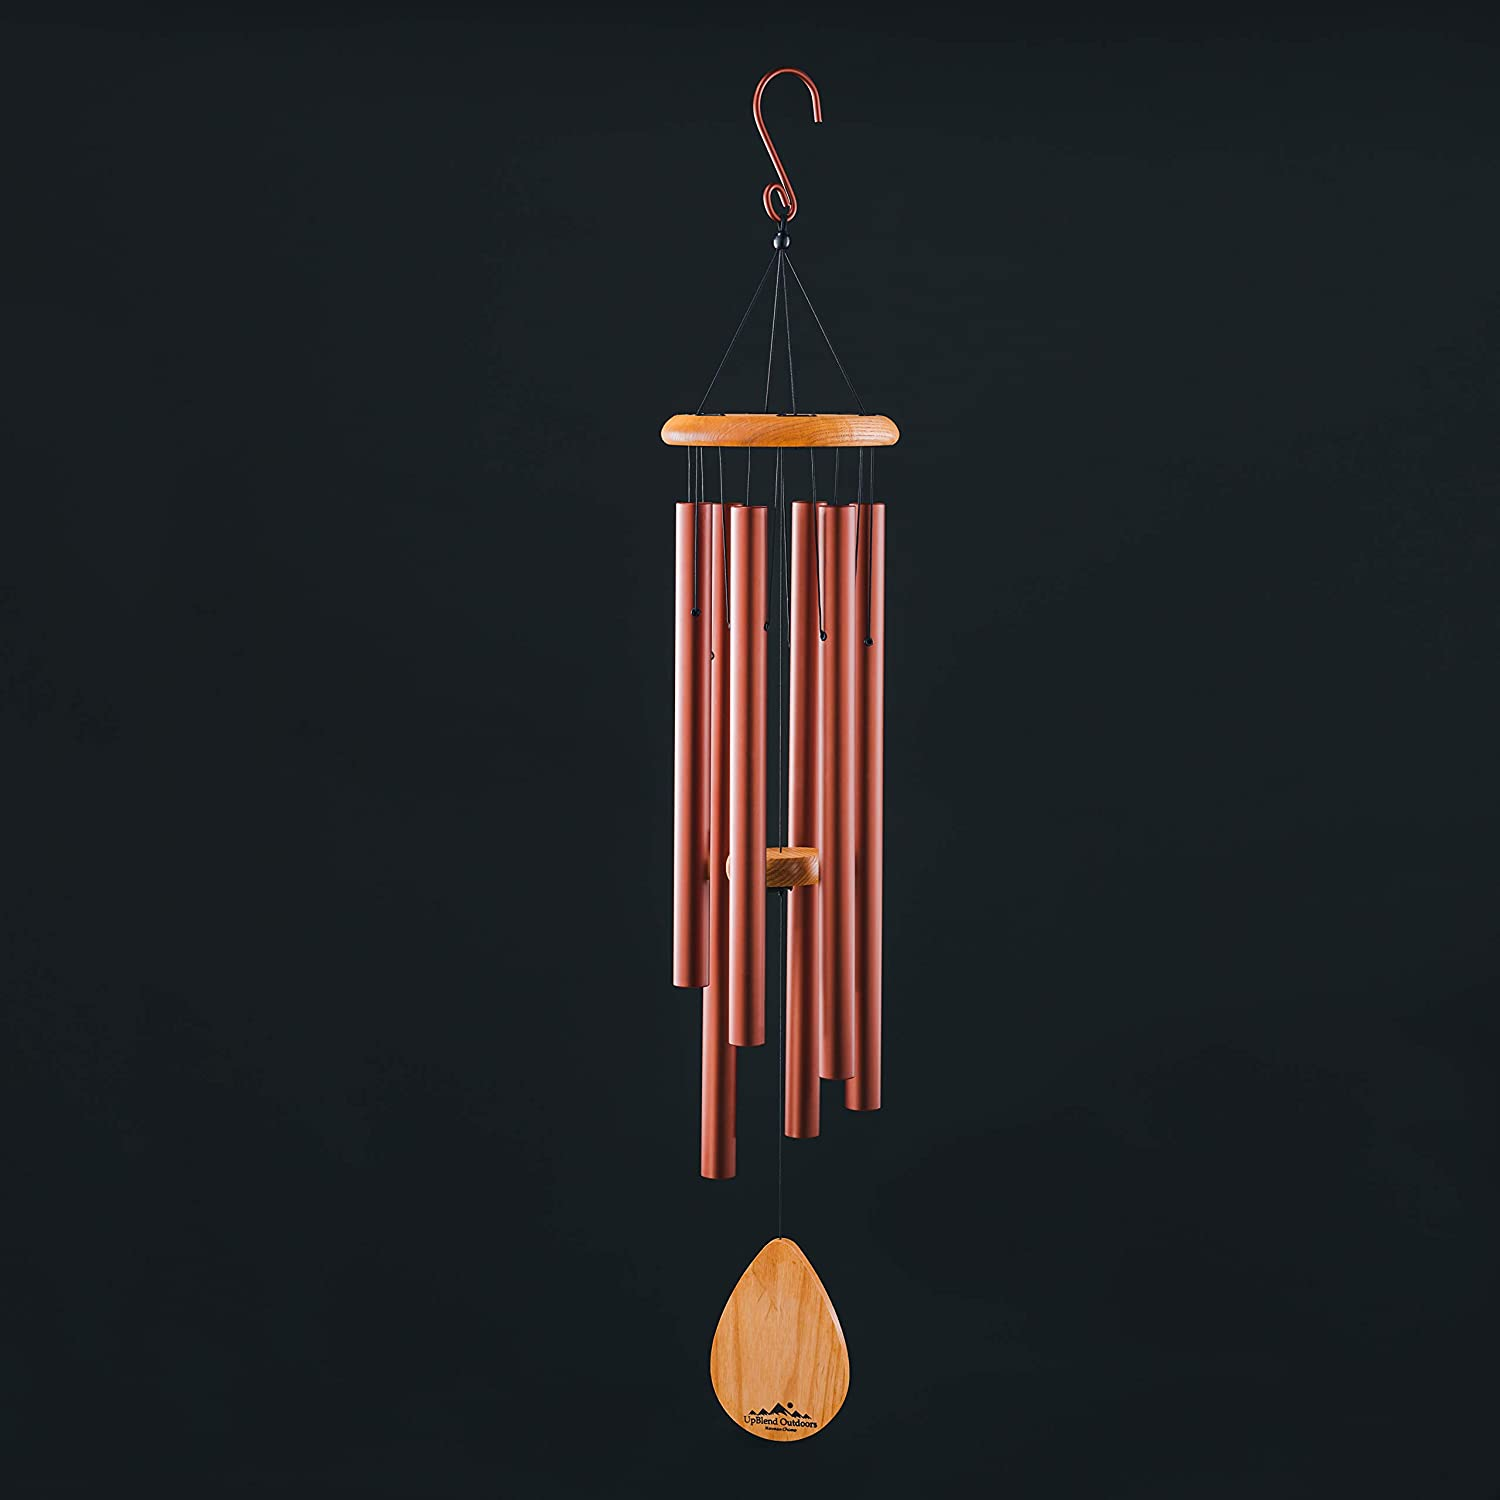 """UpBlend Outdoors Large Wind Chime - The Classic Brown Havasu is 38"""" Total Length - Hand-Tuned and Beautiful as a Gift or for Your Patio, Garden, and Outdoor Home décor"""